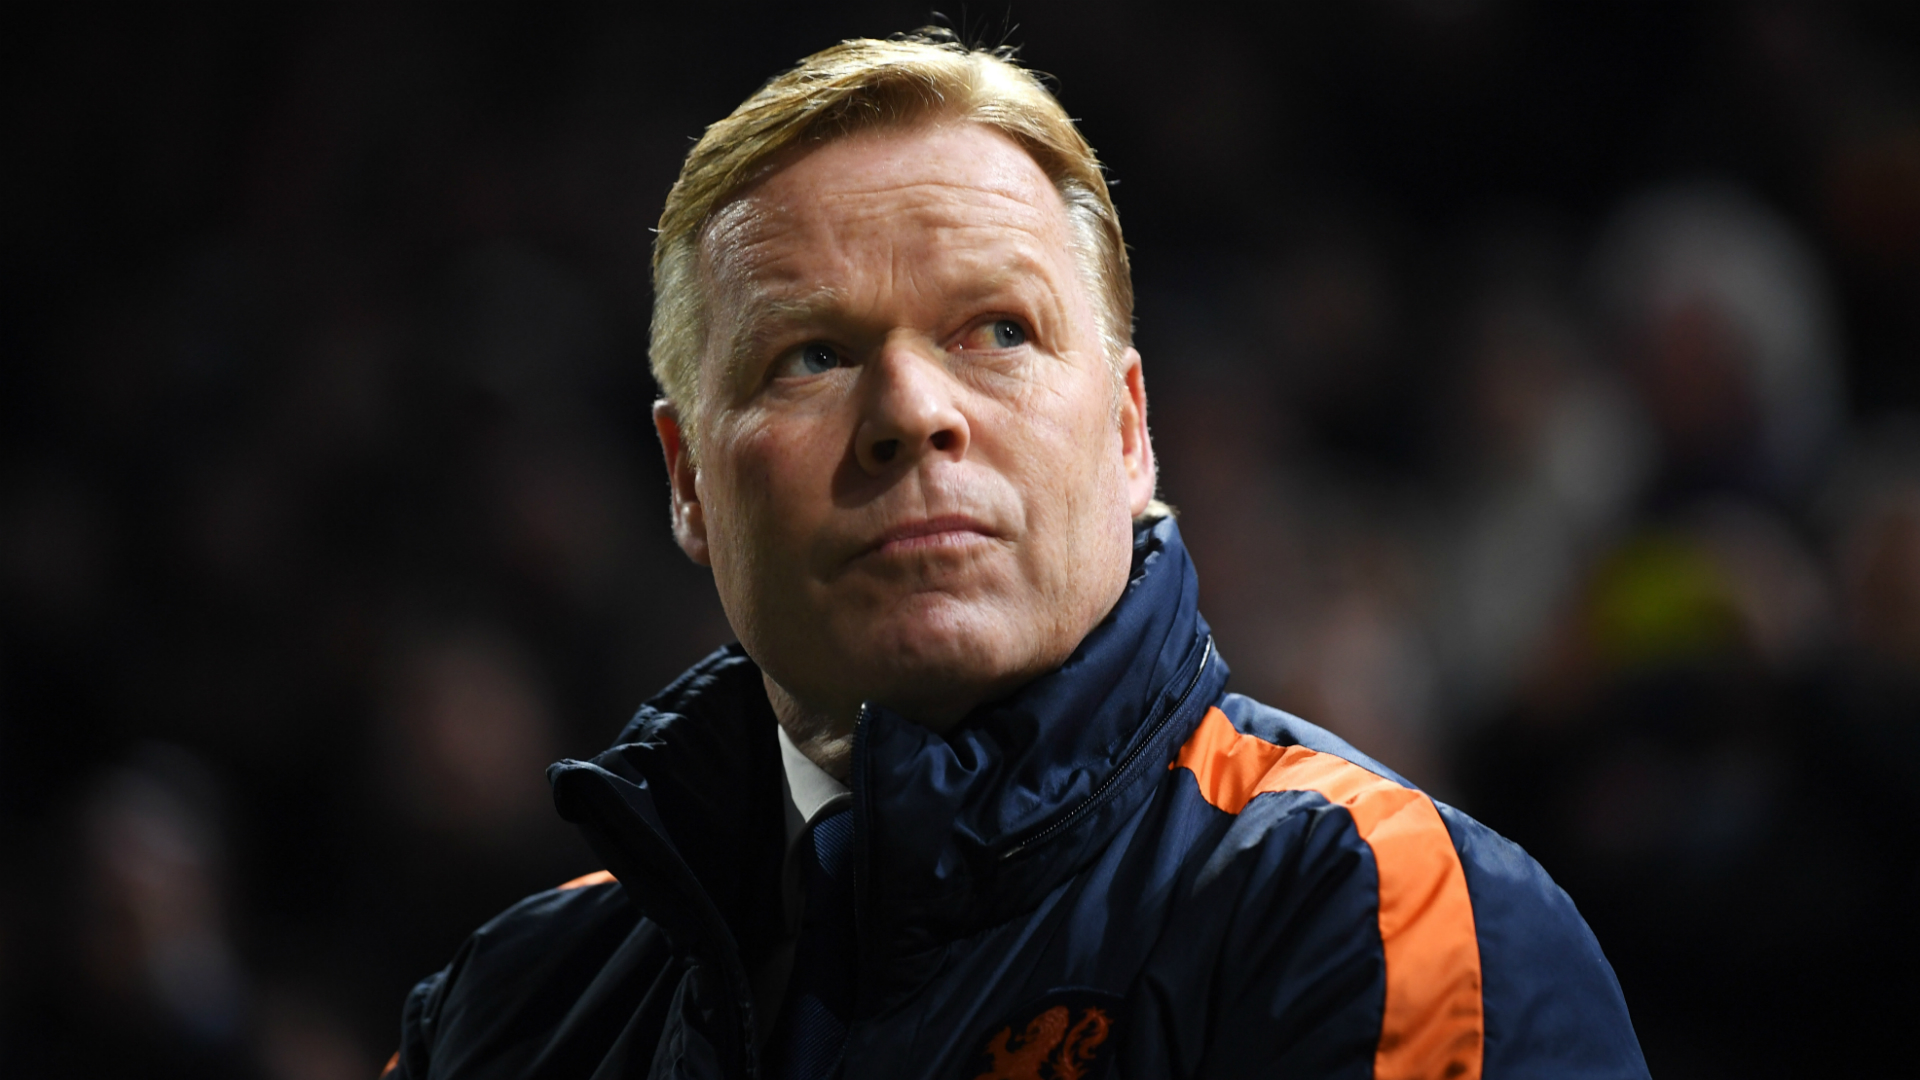 France's World Cup win means nothing now – Koeman